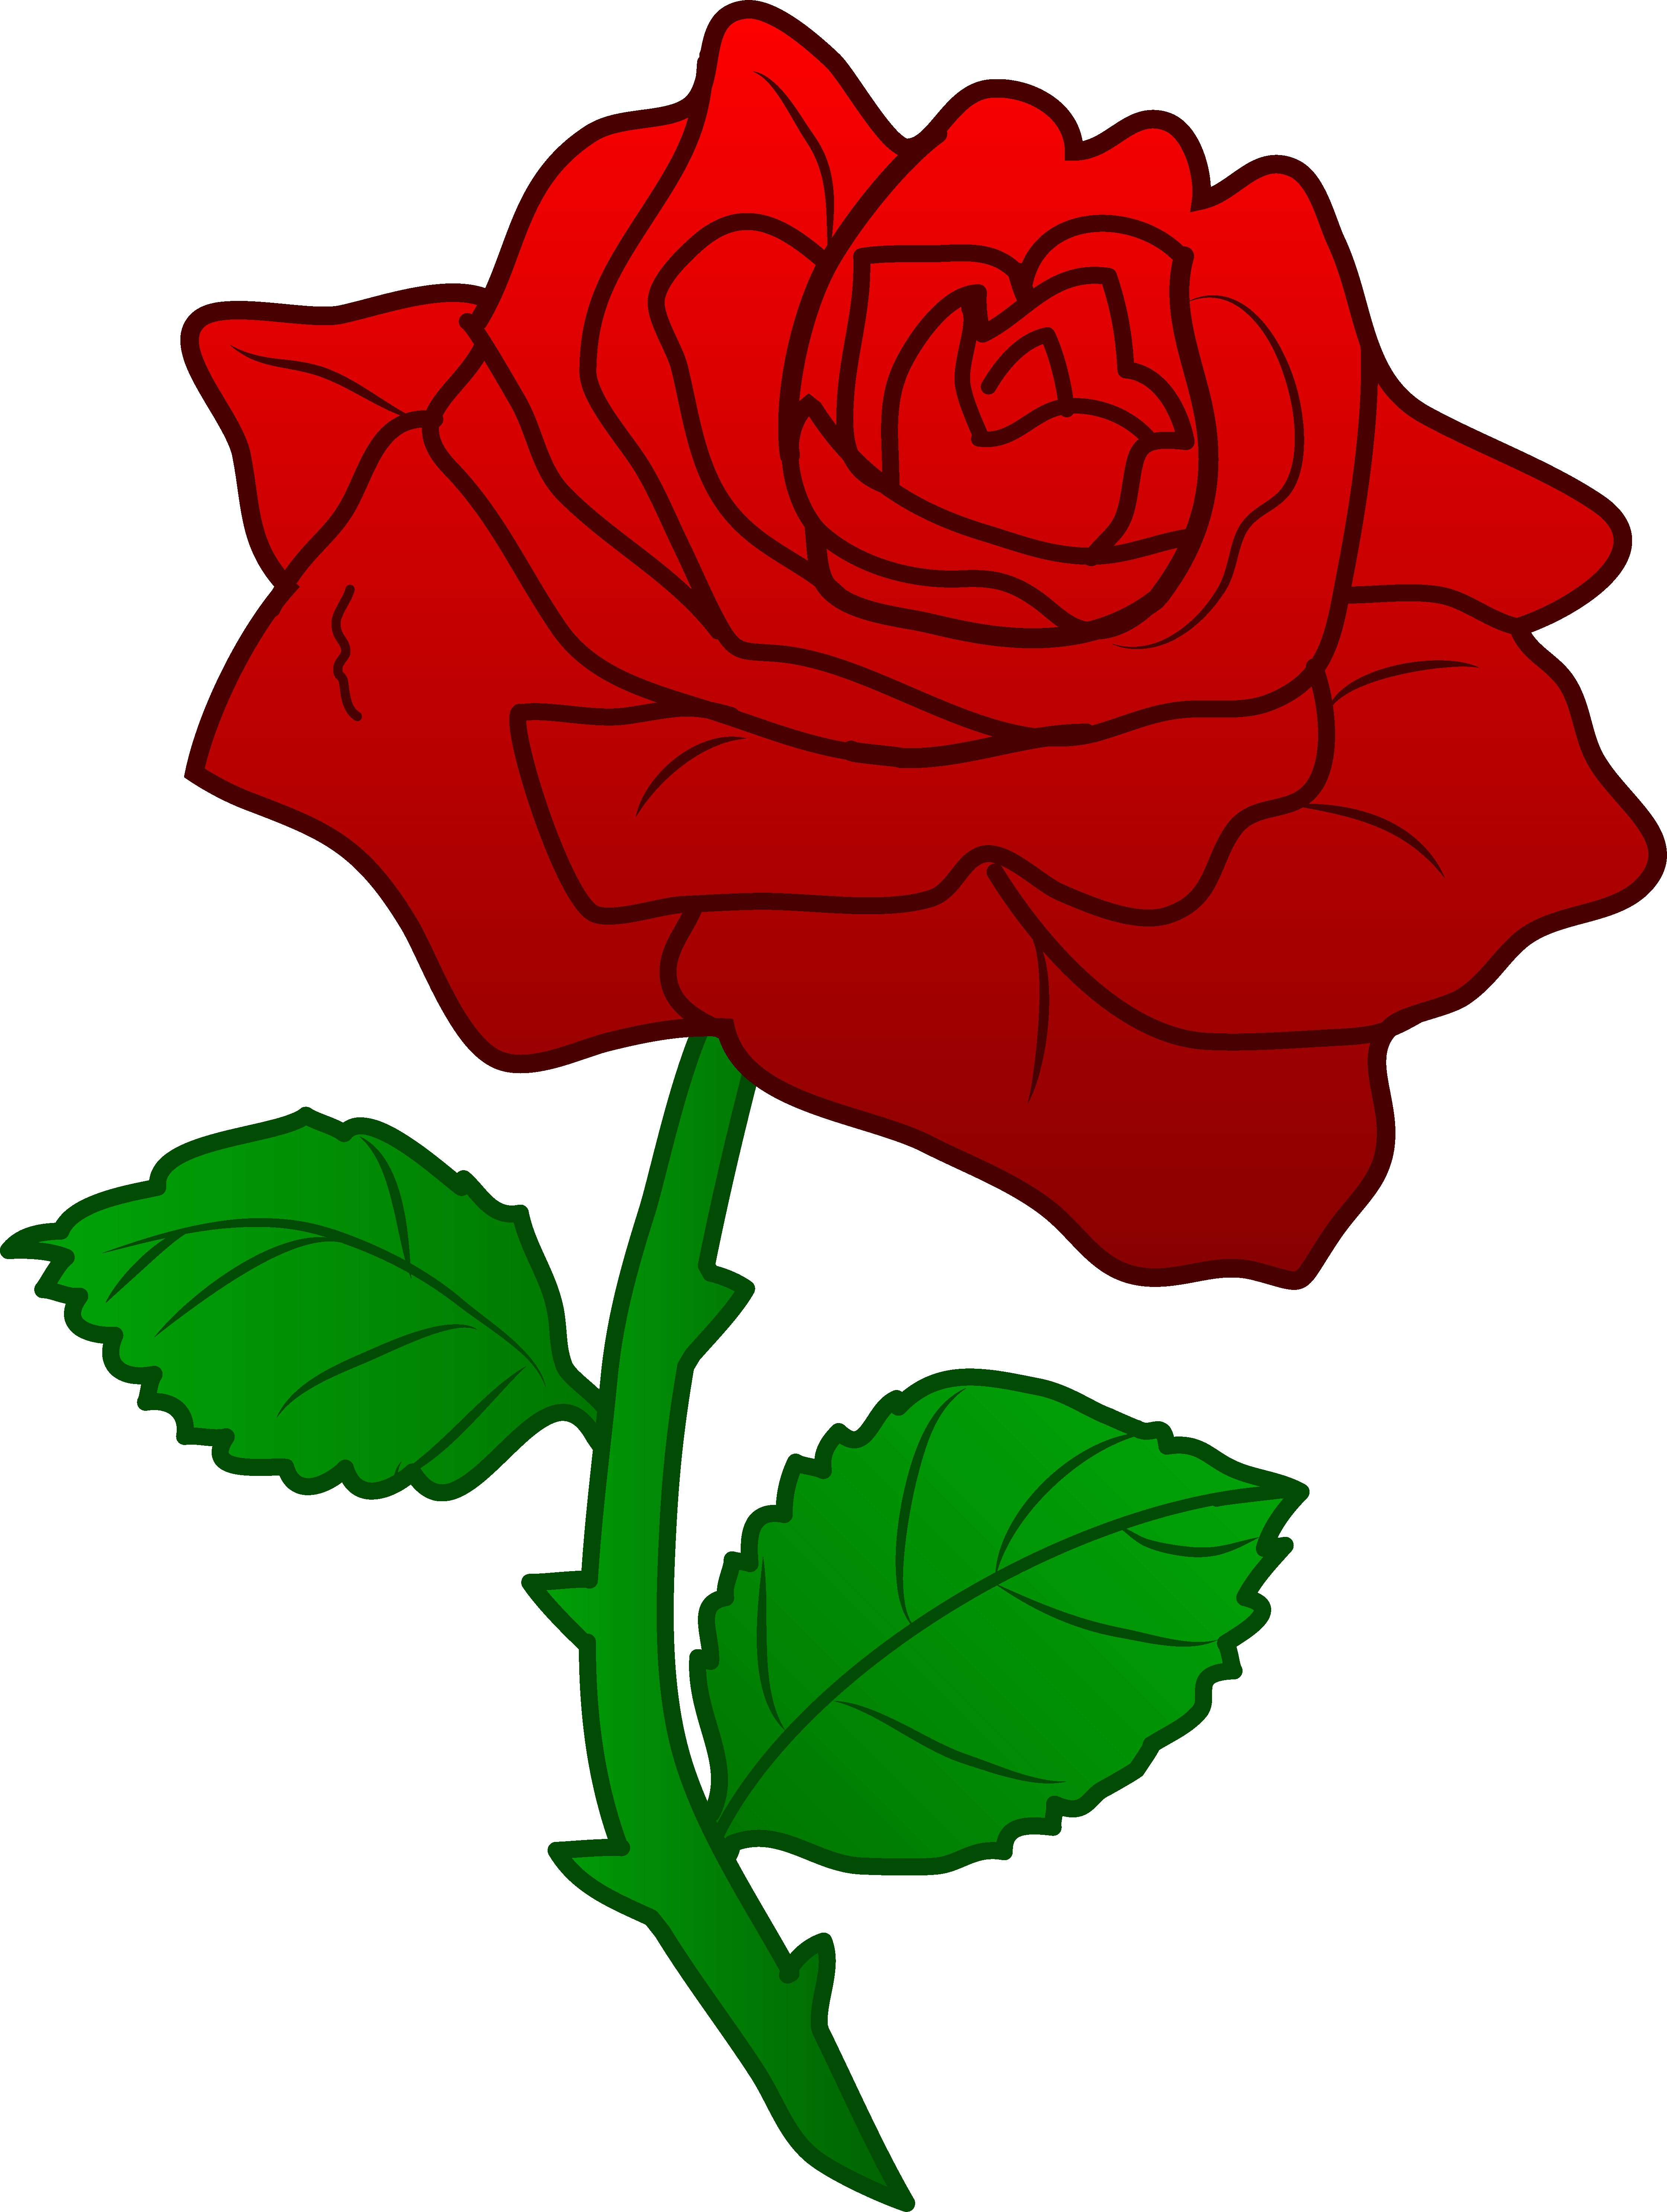 Rose clipart #4, Download drawings